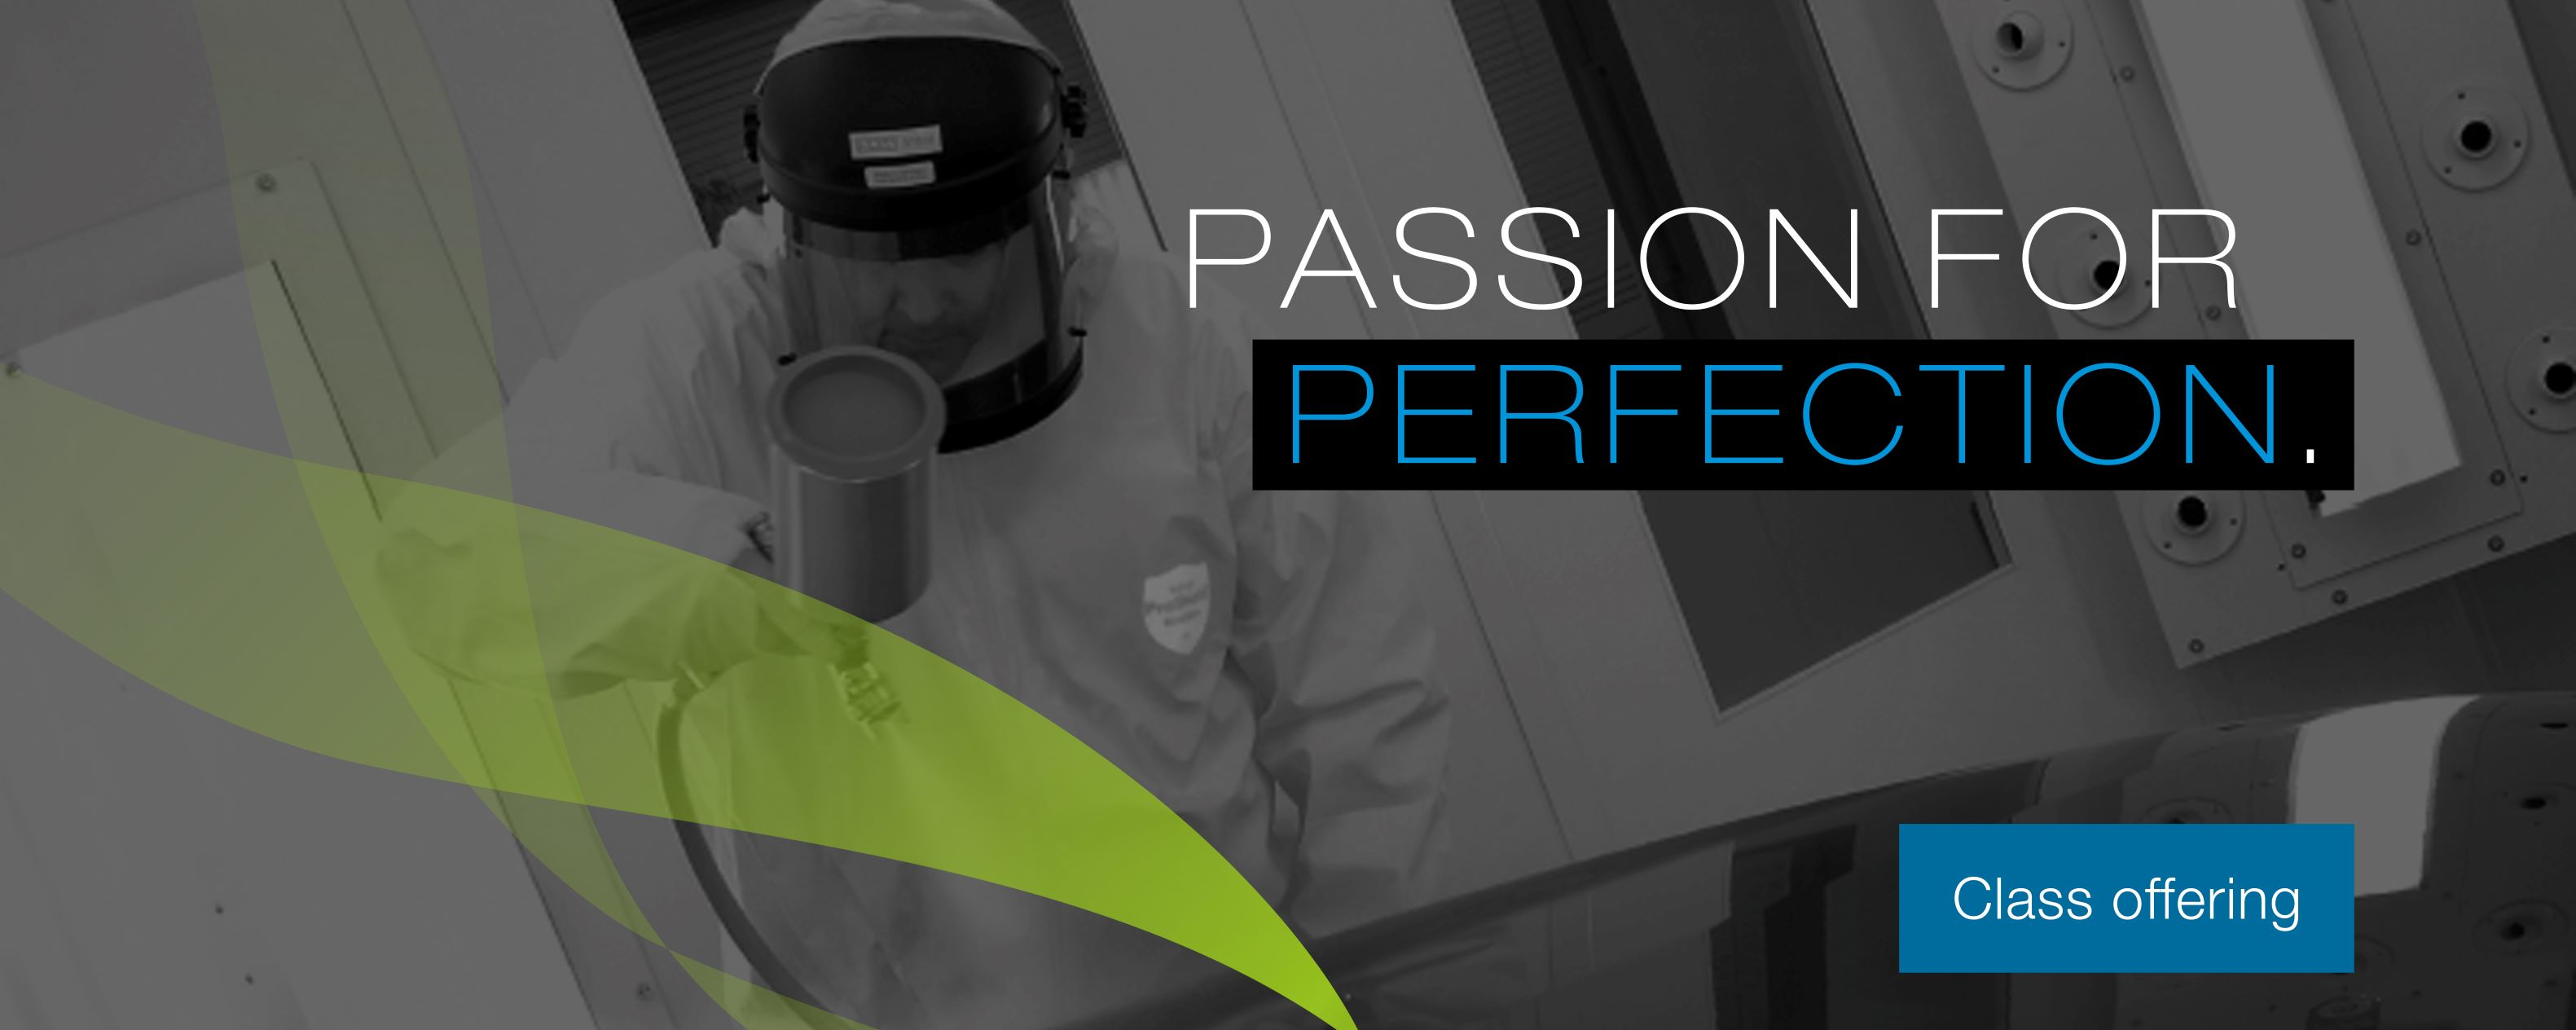 Passion for perfection - Class offering